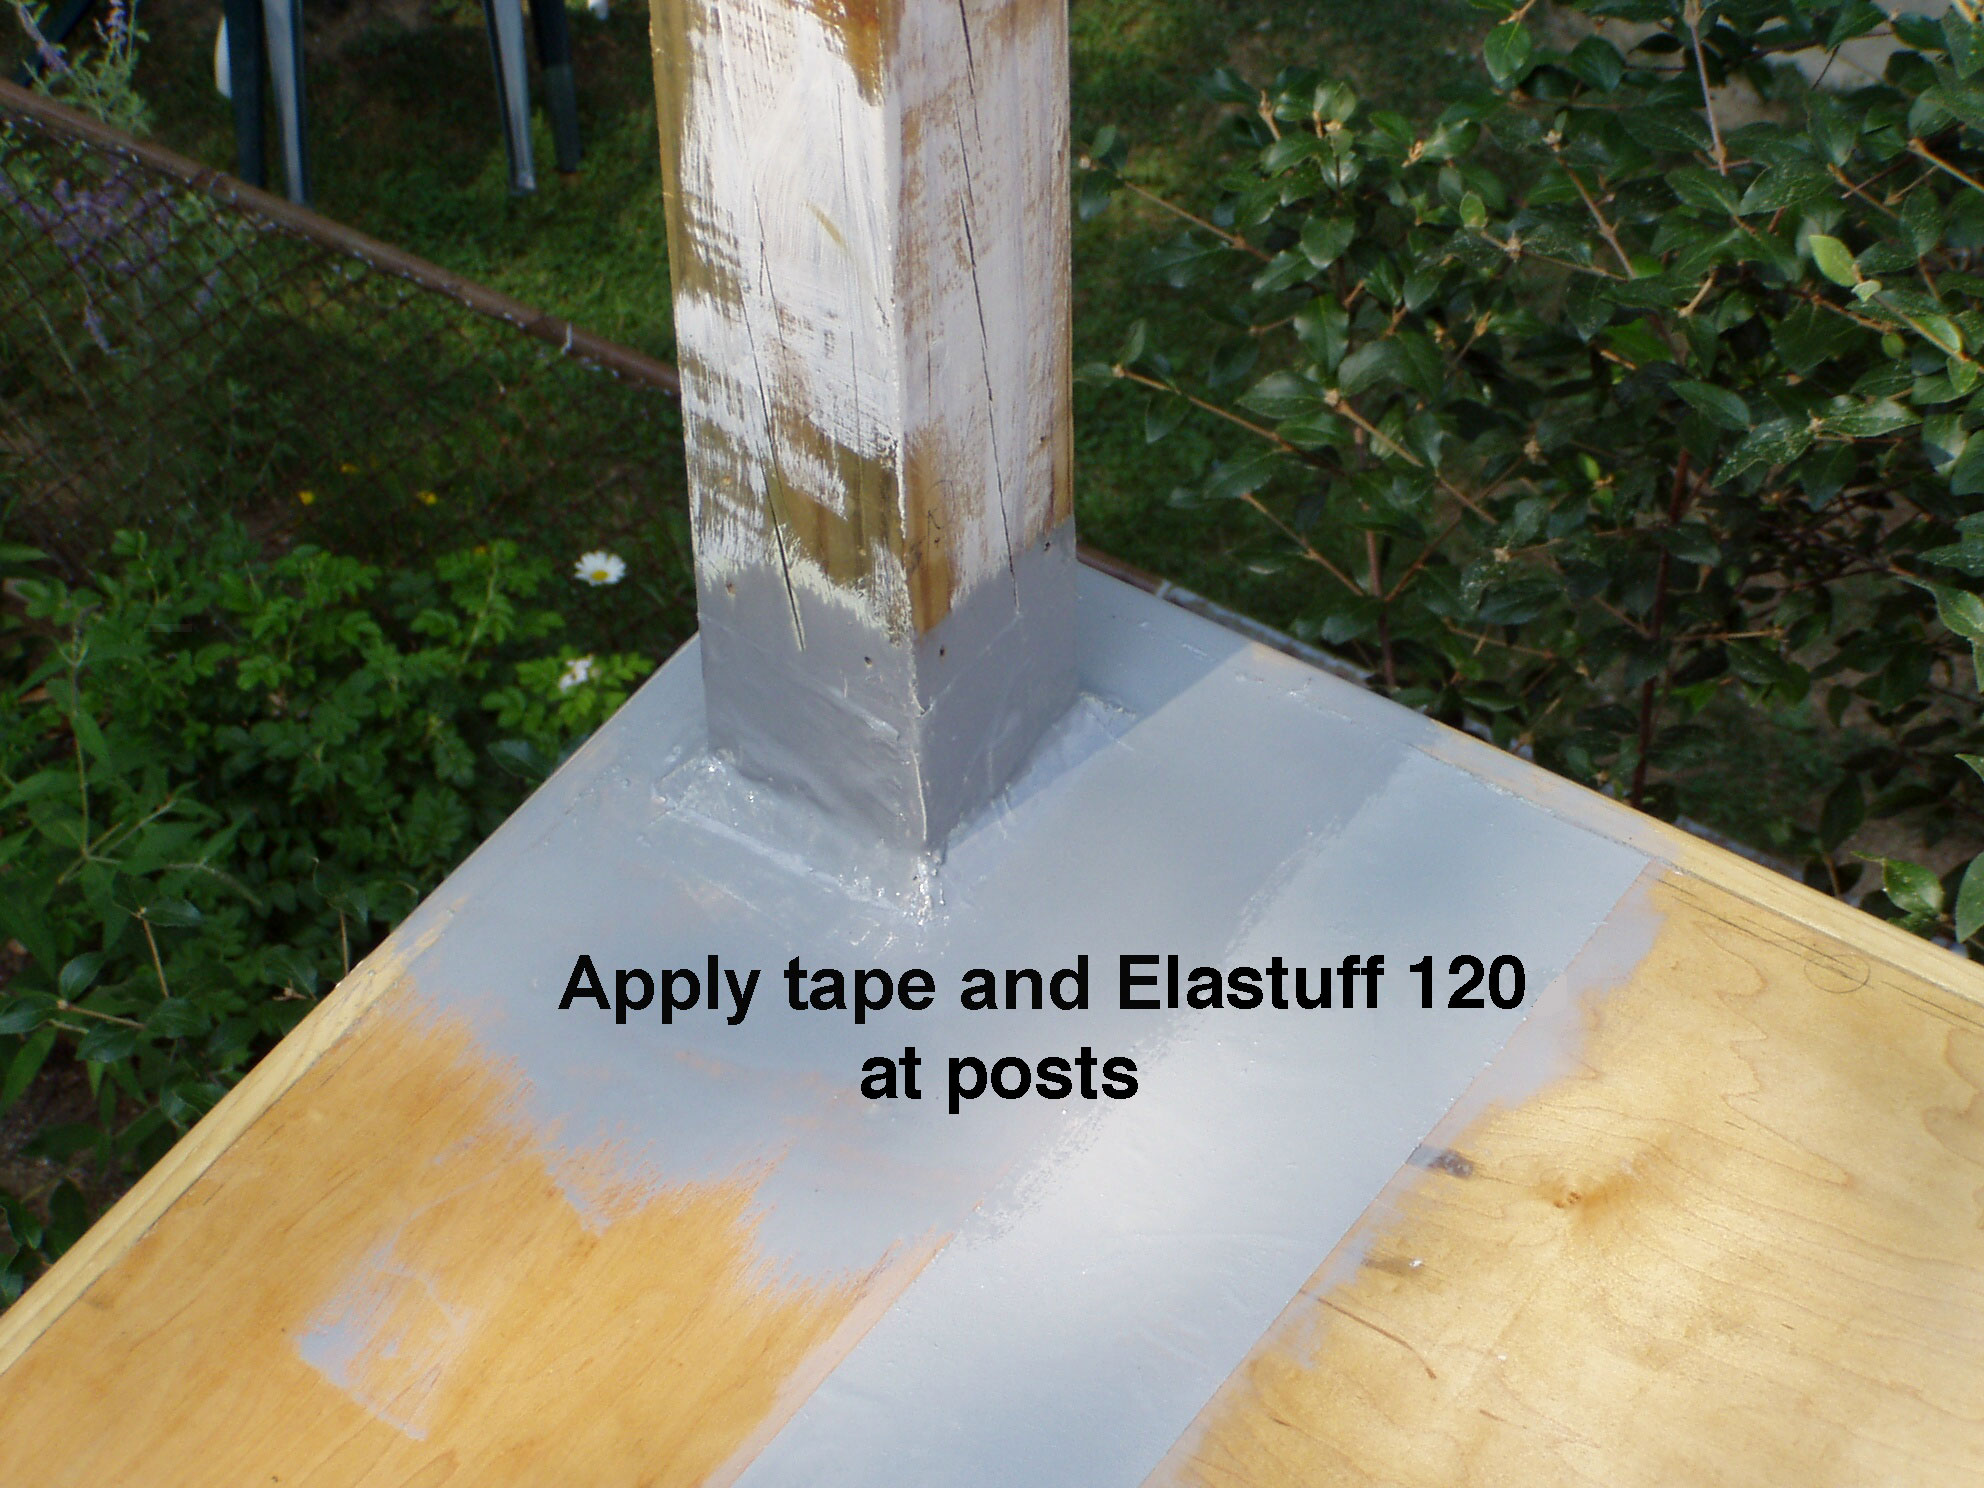 4 inch tape embeded in Elastuff 120 at posts